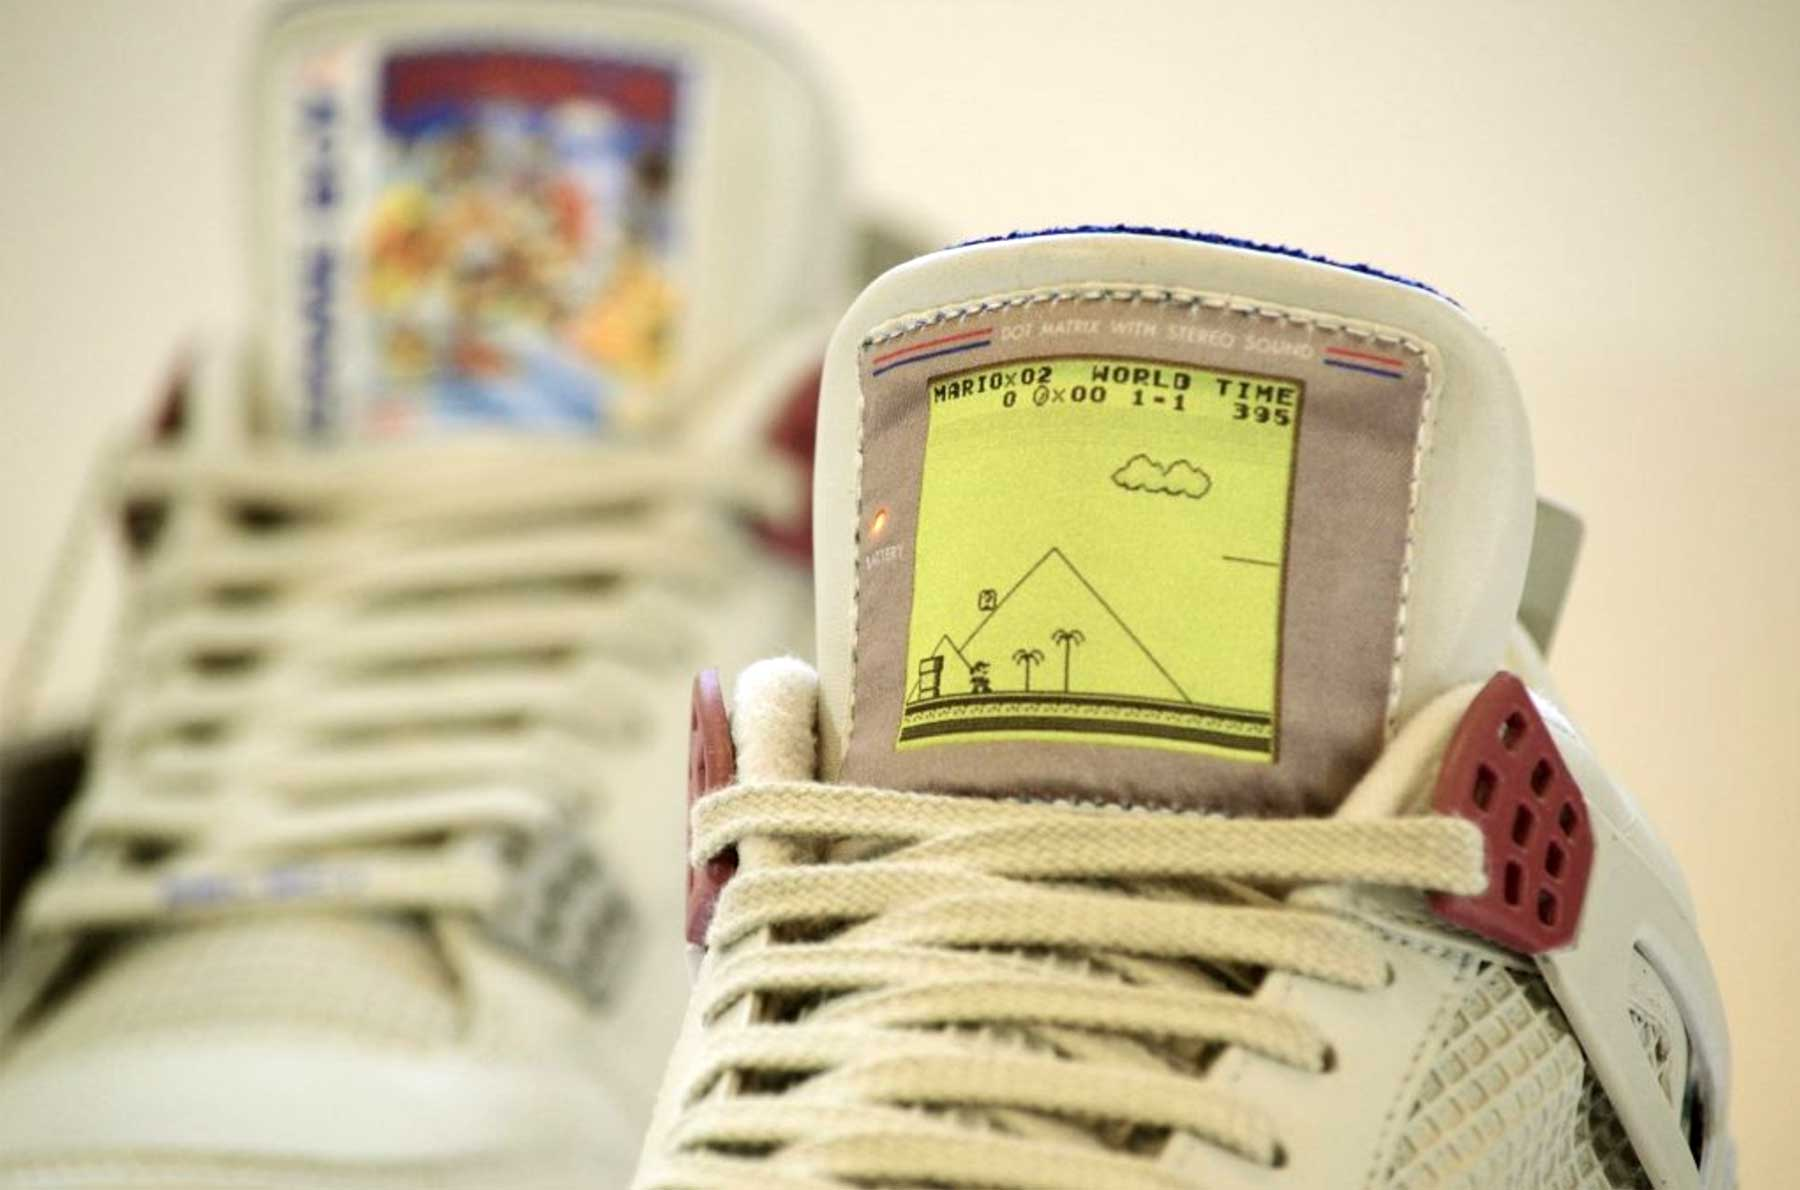 GAME BOY Sneakers GAME-BOY-Sneakers-Air-Jordan-IV-Super-Mario_04